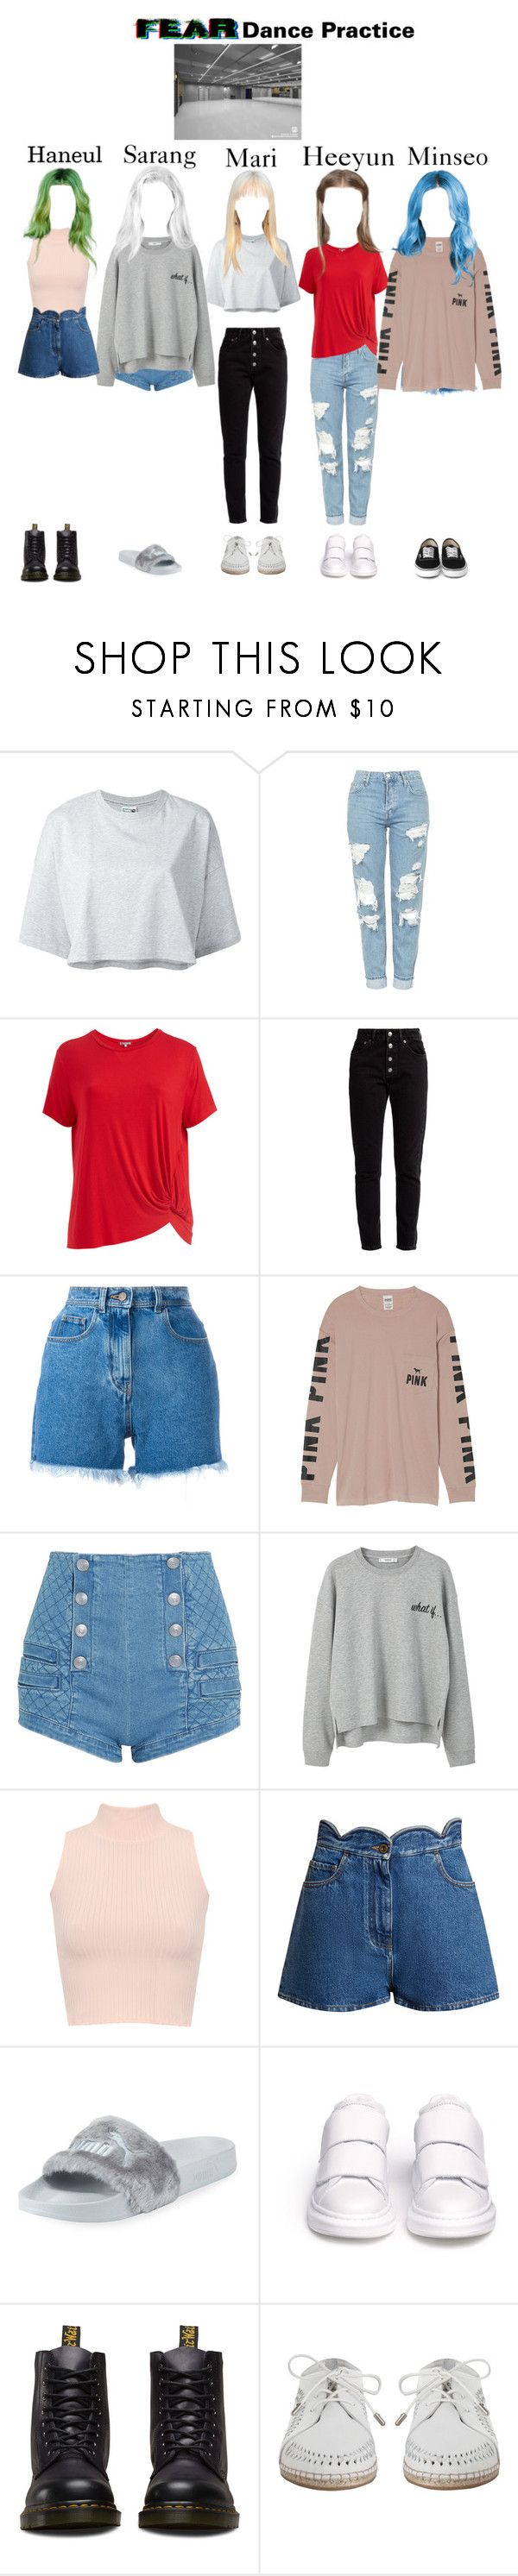 """Fear Dance Practice"" by dfyofficial ❤ liked on Polyvore featuring Puma, Topshop, Abito, Balenciaga, Philosophy di Lorenzo Serafini, Victoria's Secret, Pierre Balmain, MANGO, WearAll and Valentino"